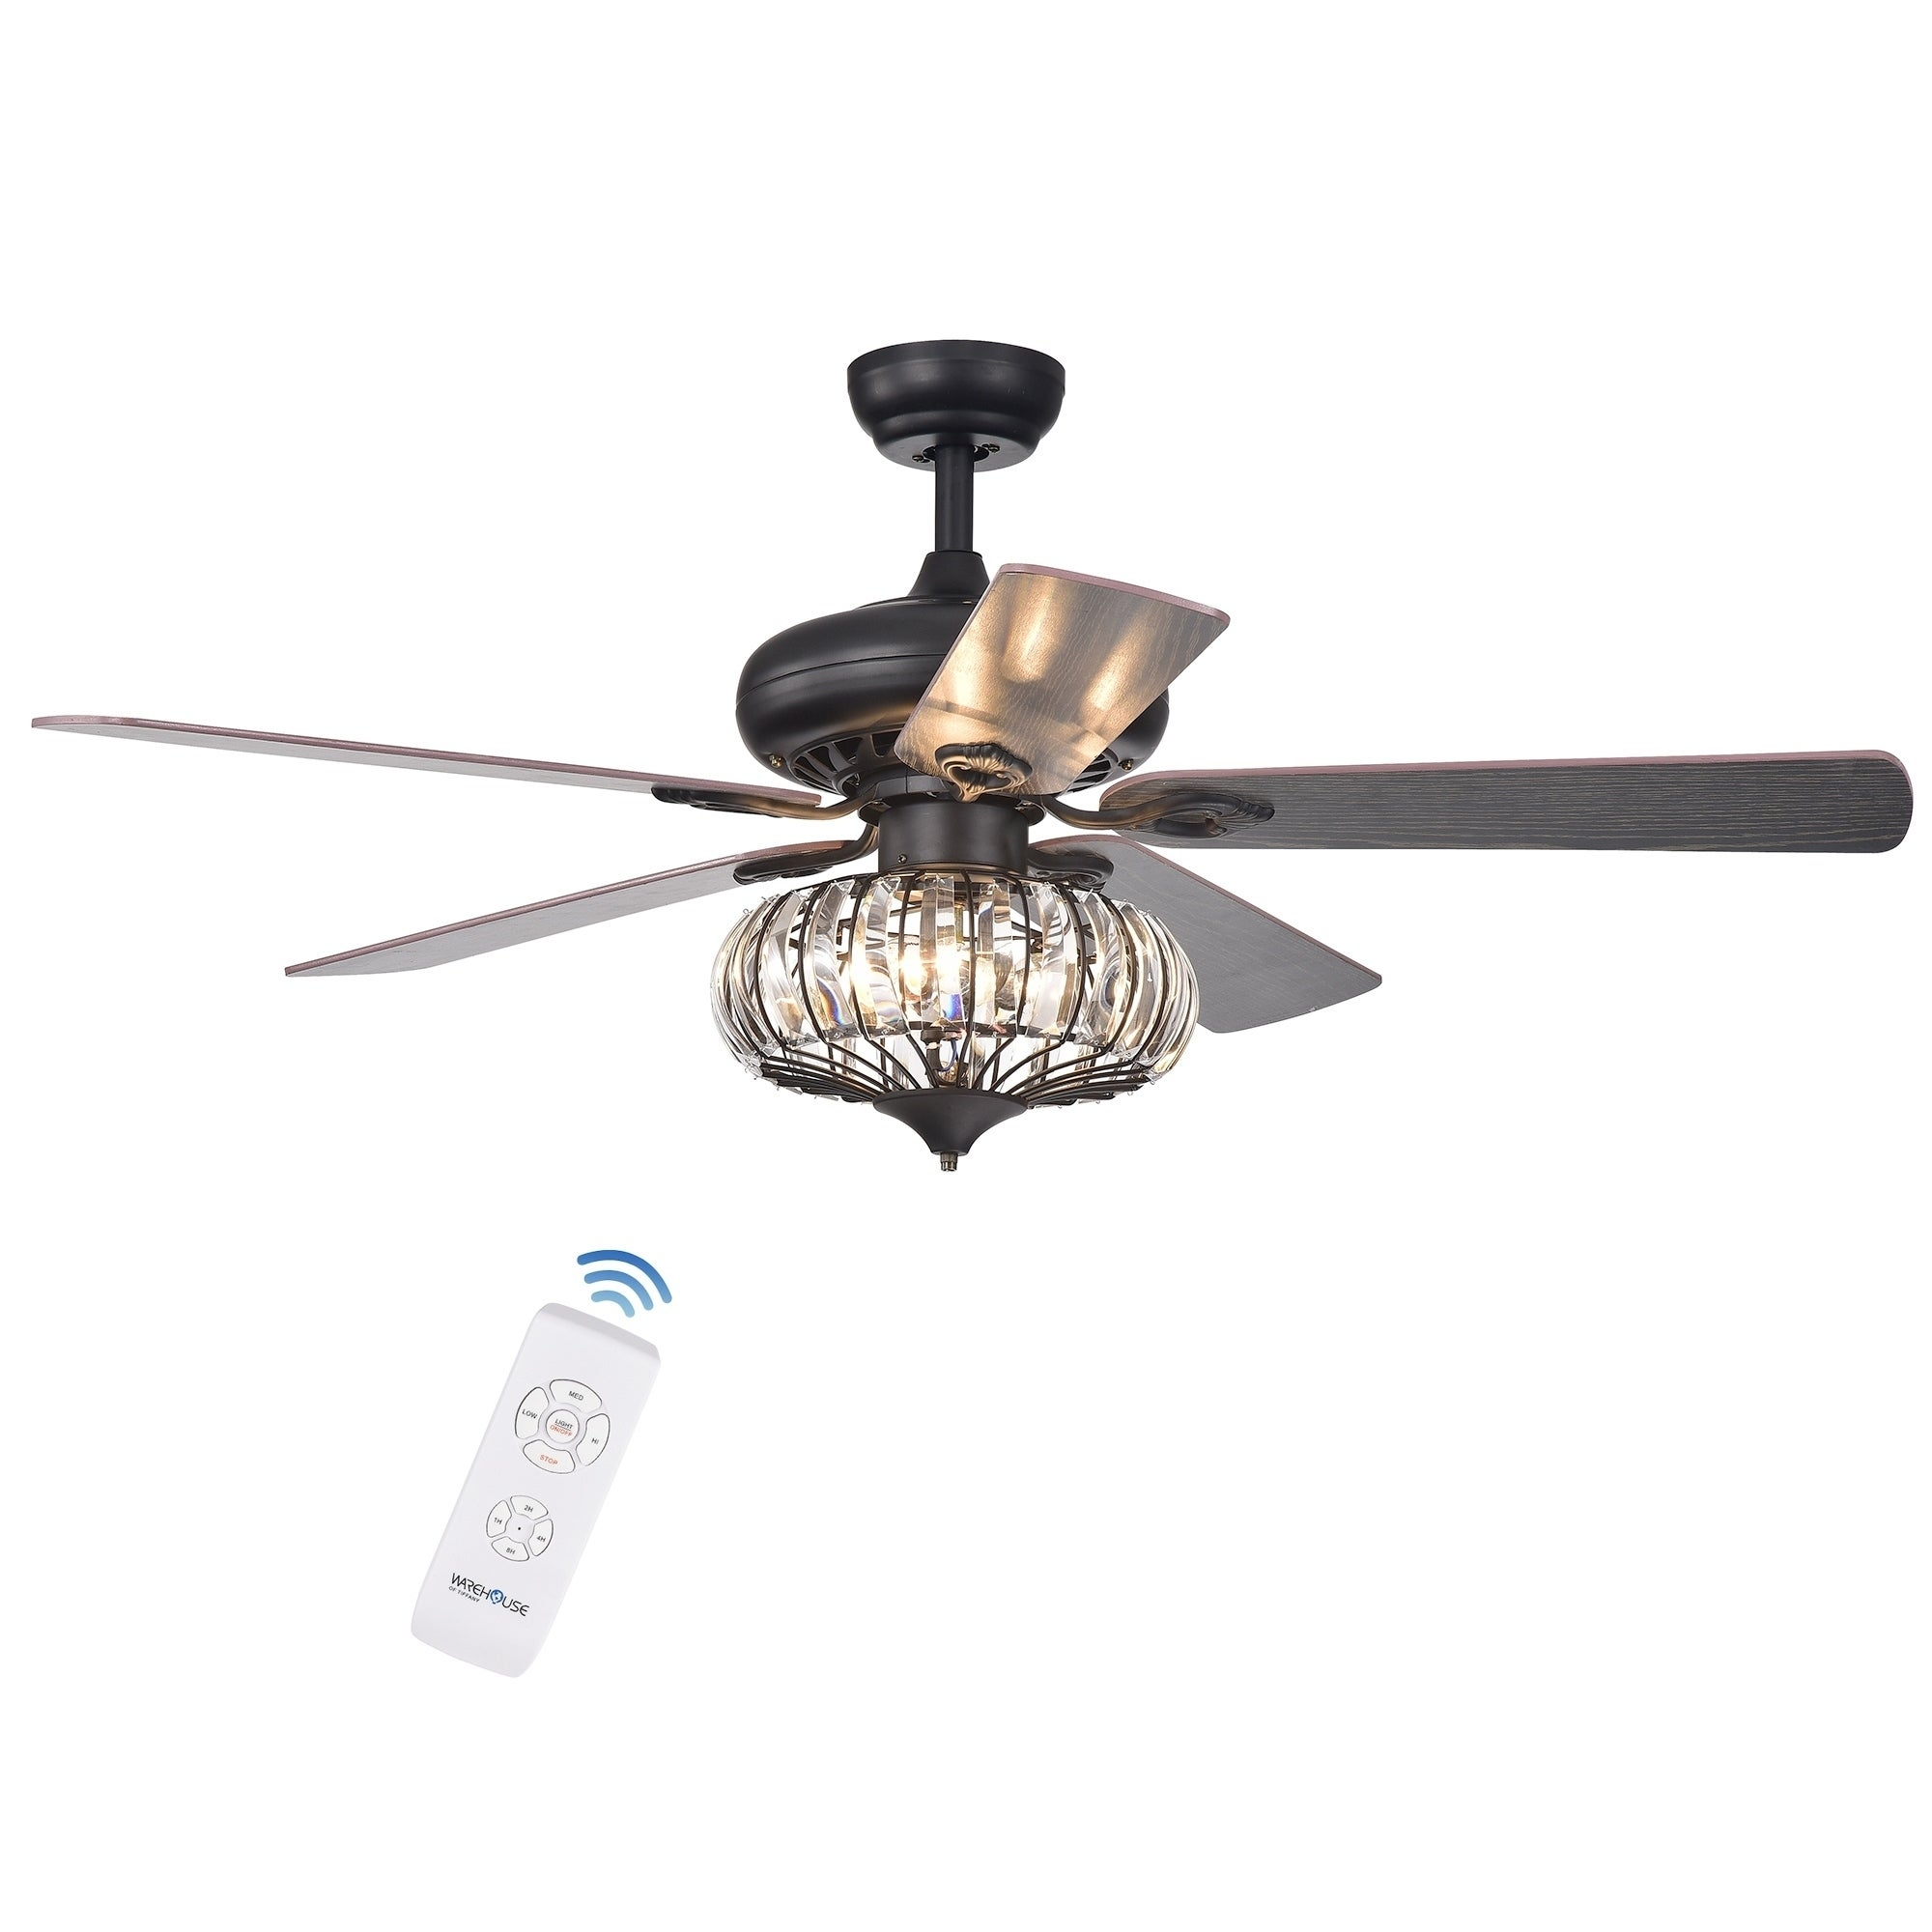 Chrysaor 3 Light Crystal 5 Blade 52 Inch Brown Ceiling Fan Optional Remote On Free Shipping Today 19512164